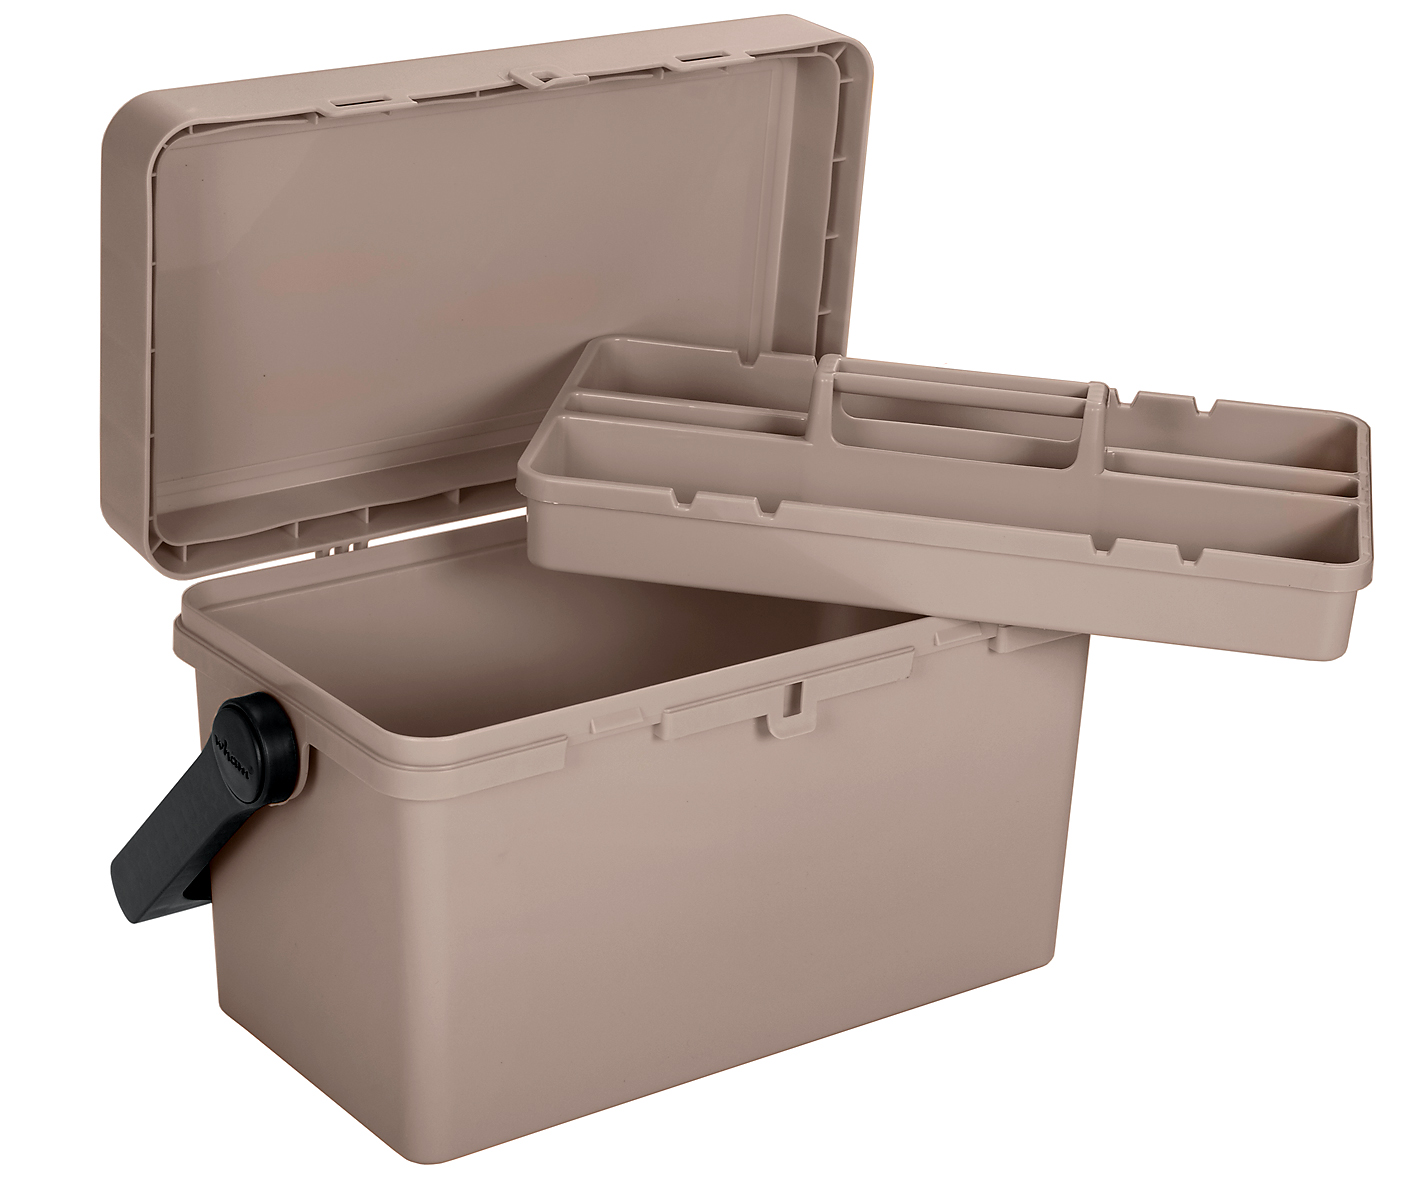 Or a fishing toolbox with removable tray and metal handle